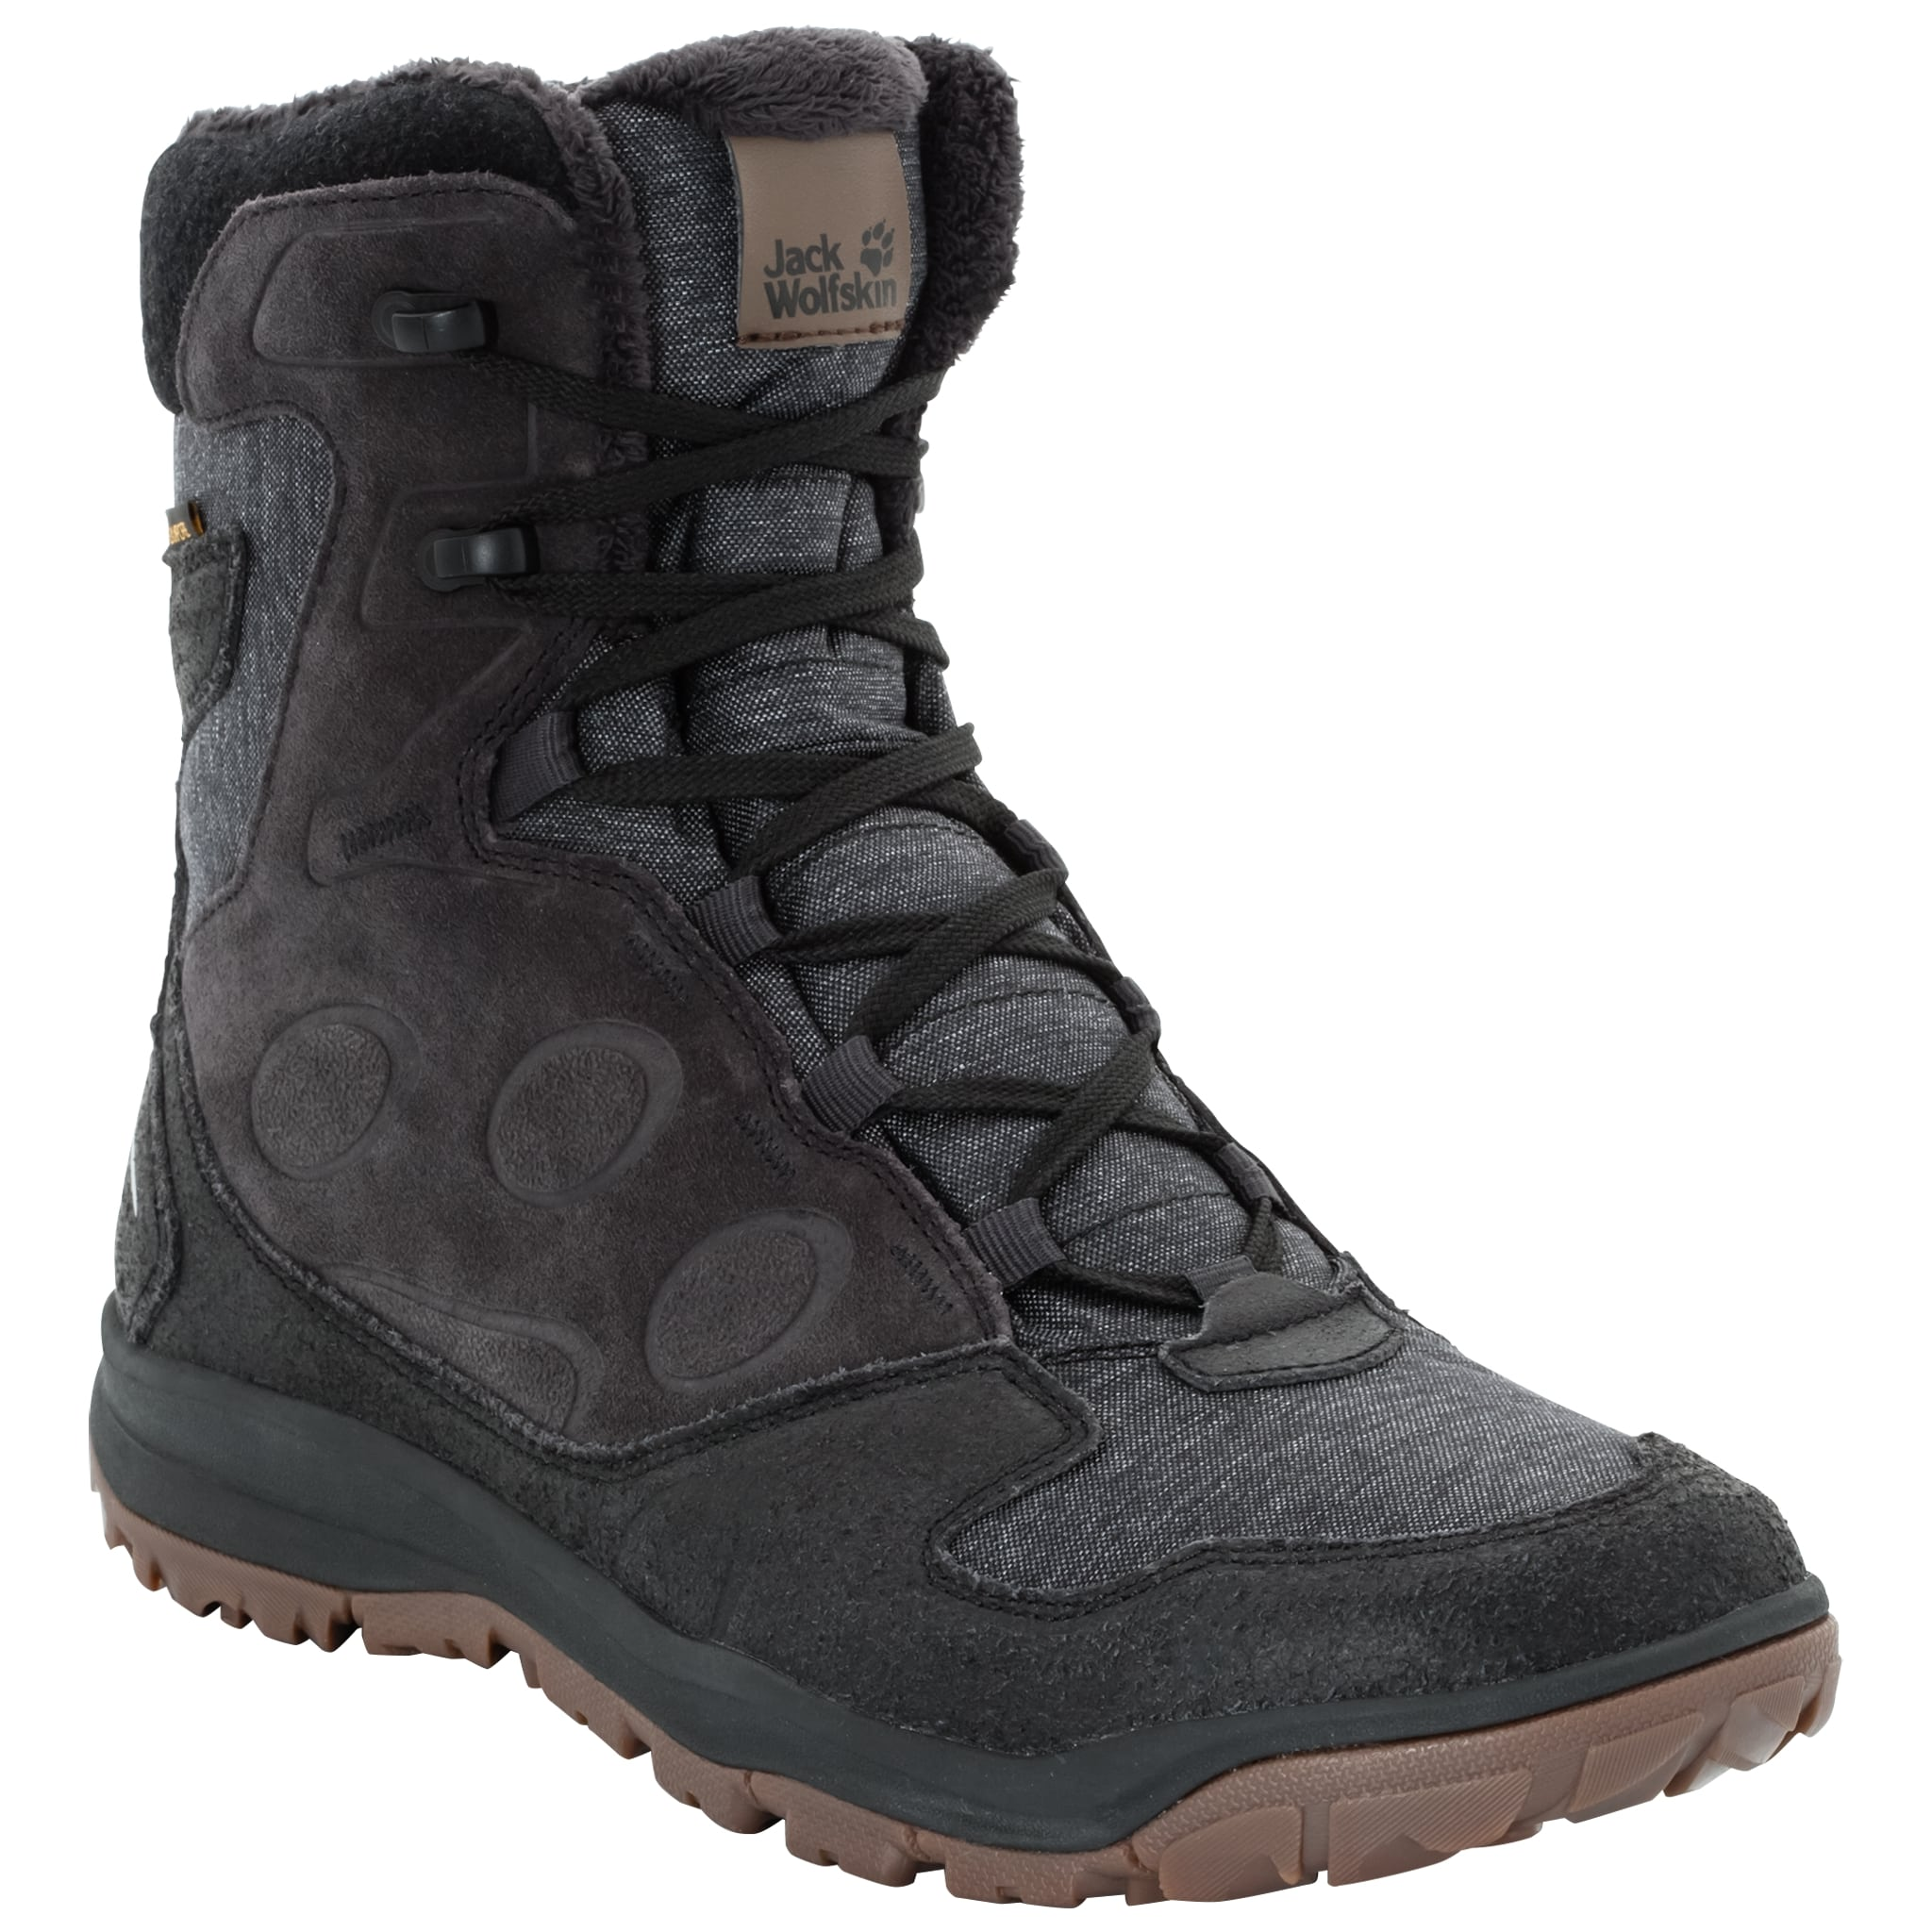 new style b22c5 d55bf Jack Wolfskin Vancouver Texapore High Winter Boots - Men's